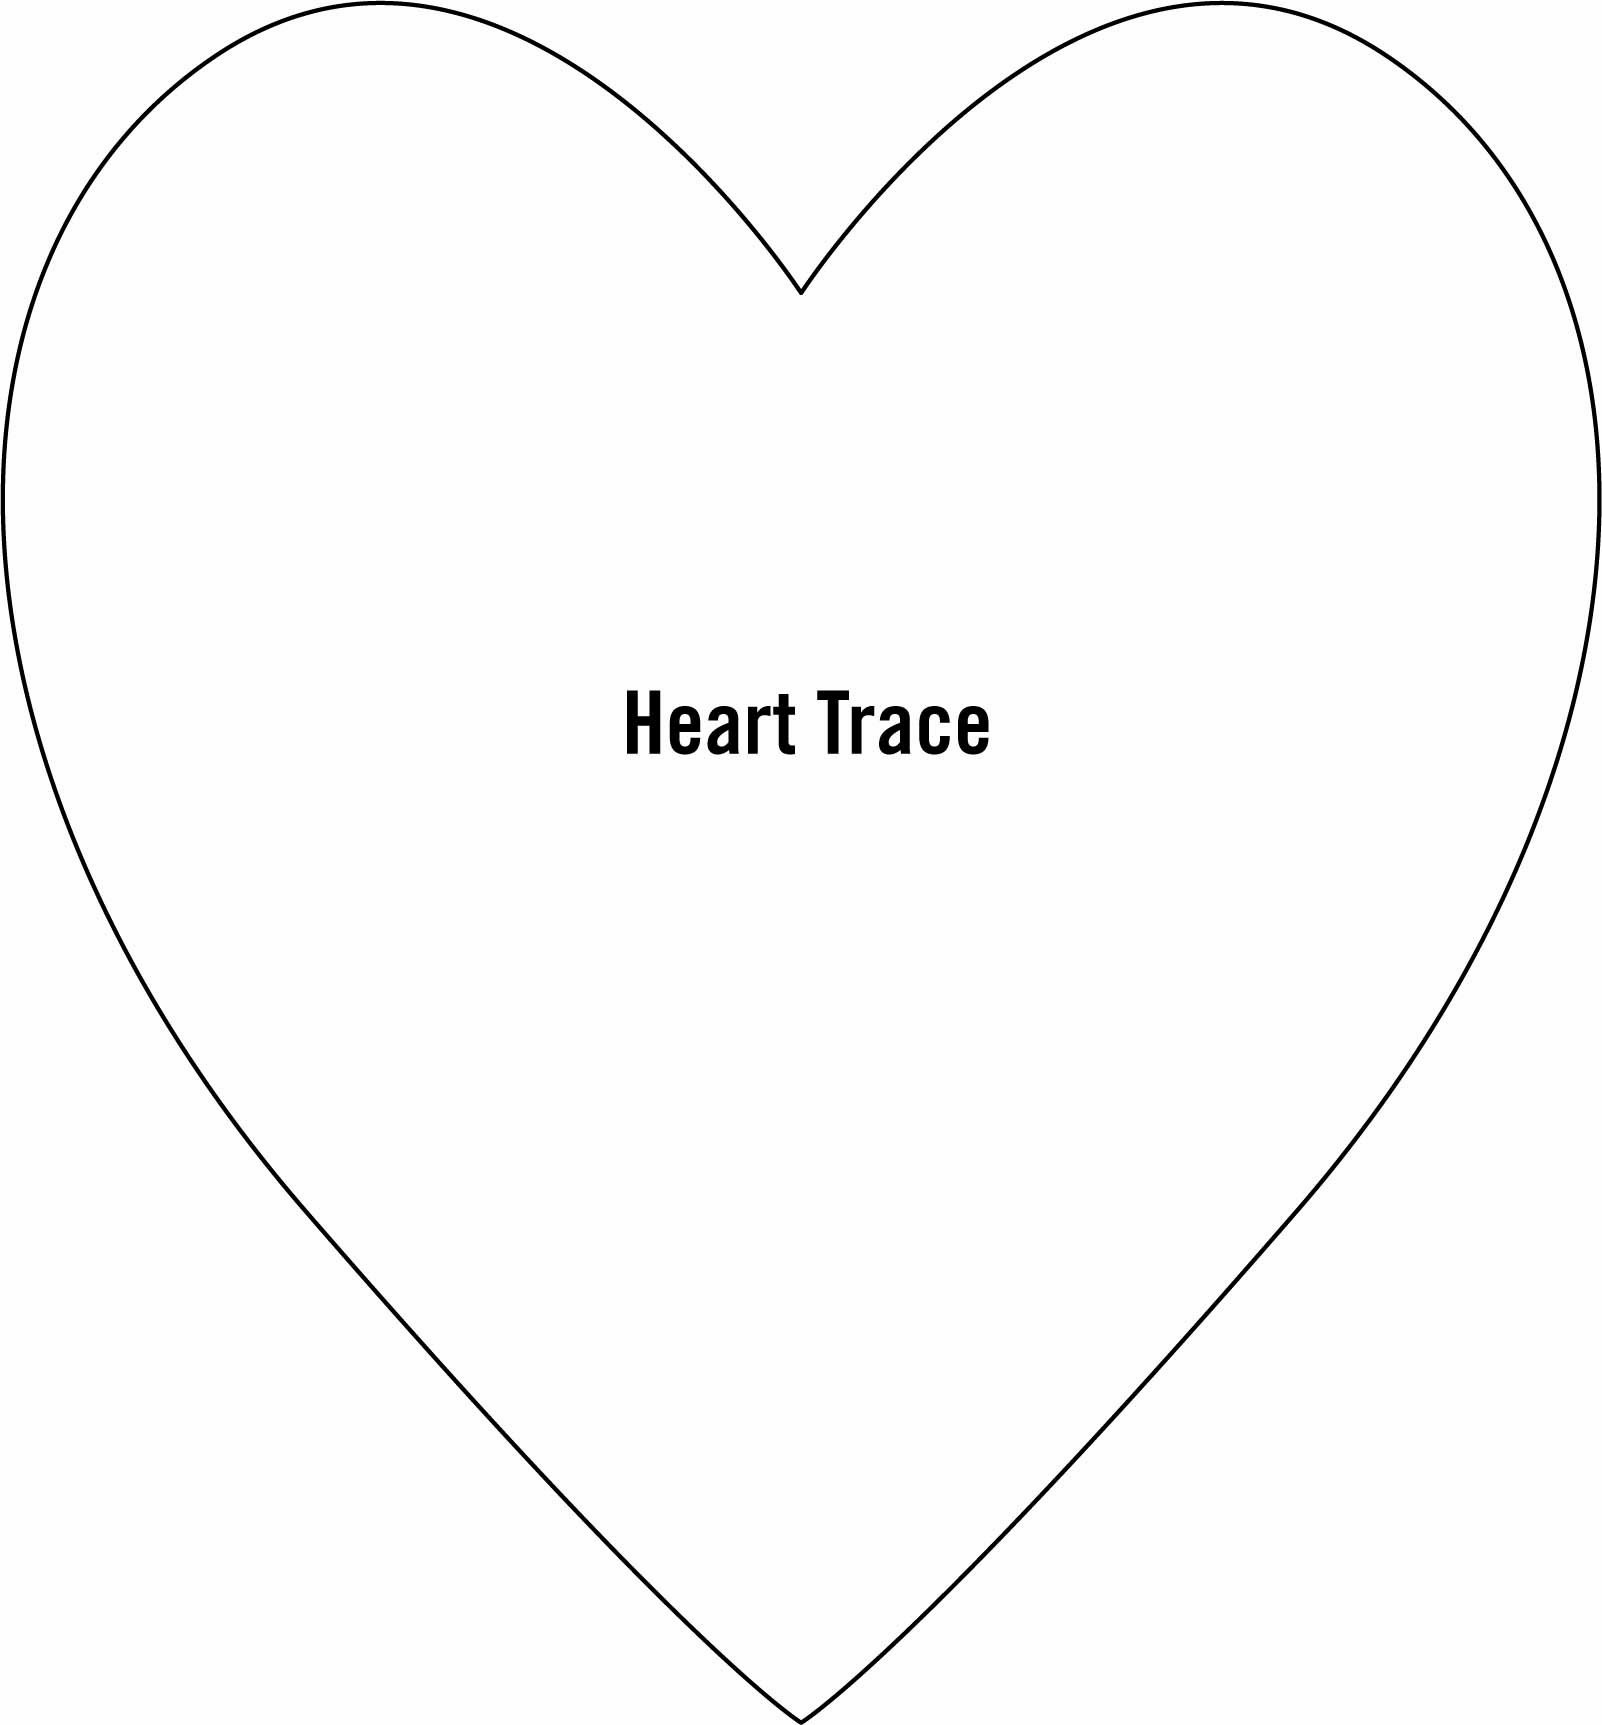 Free Printable Heart Templates (71+ Images In Collection) Page 2 - Free Printable Heart Templates